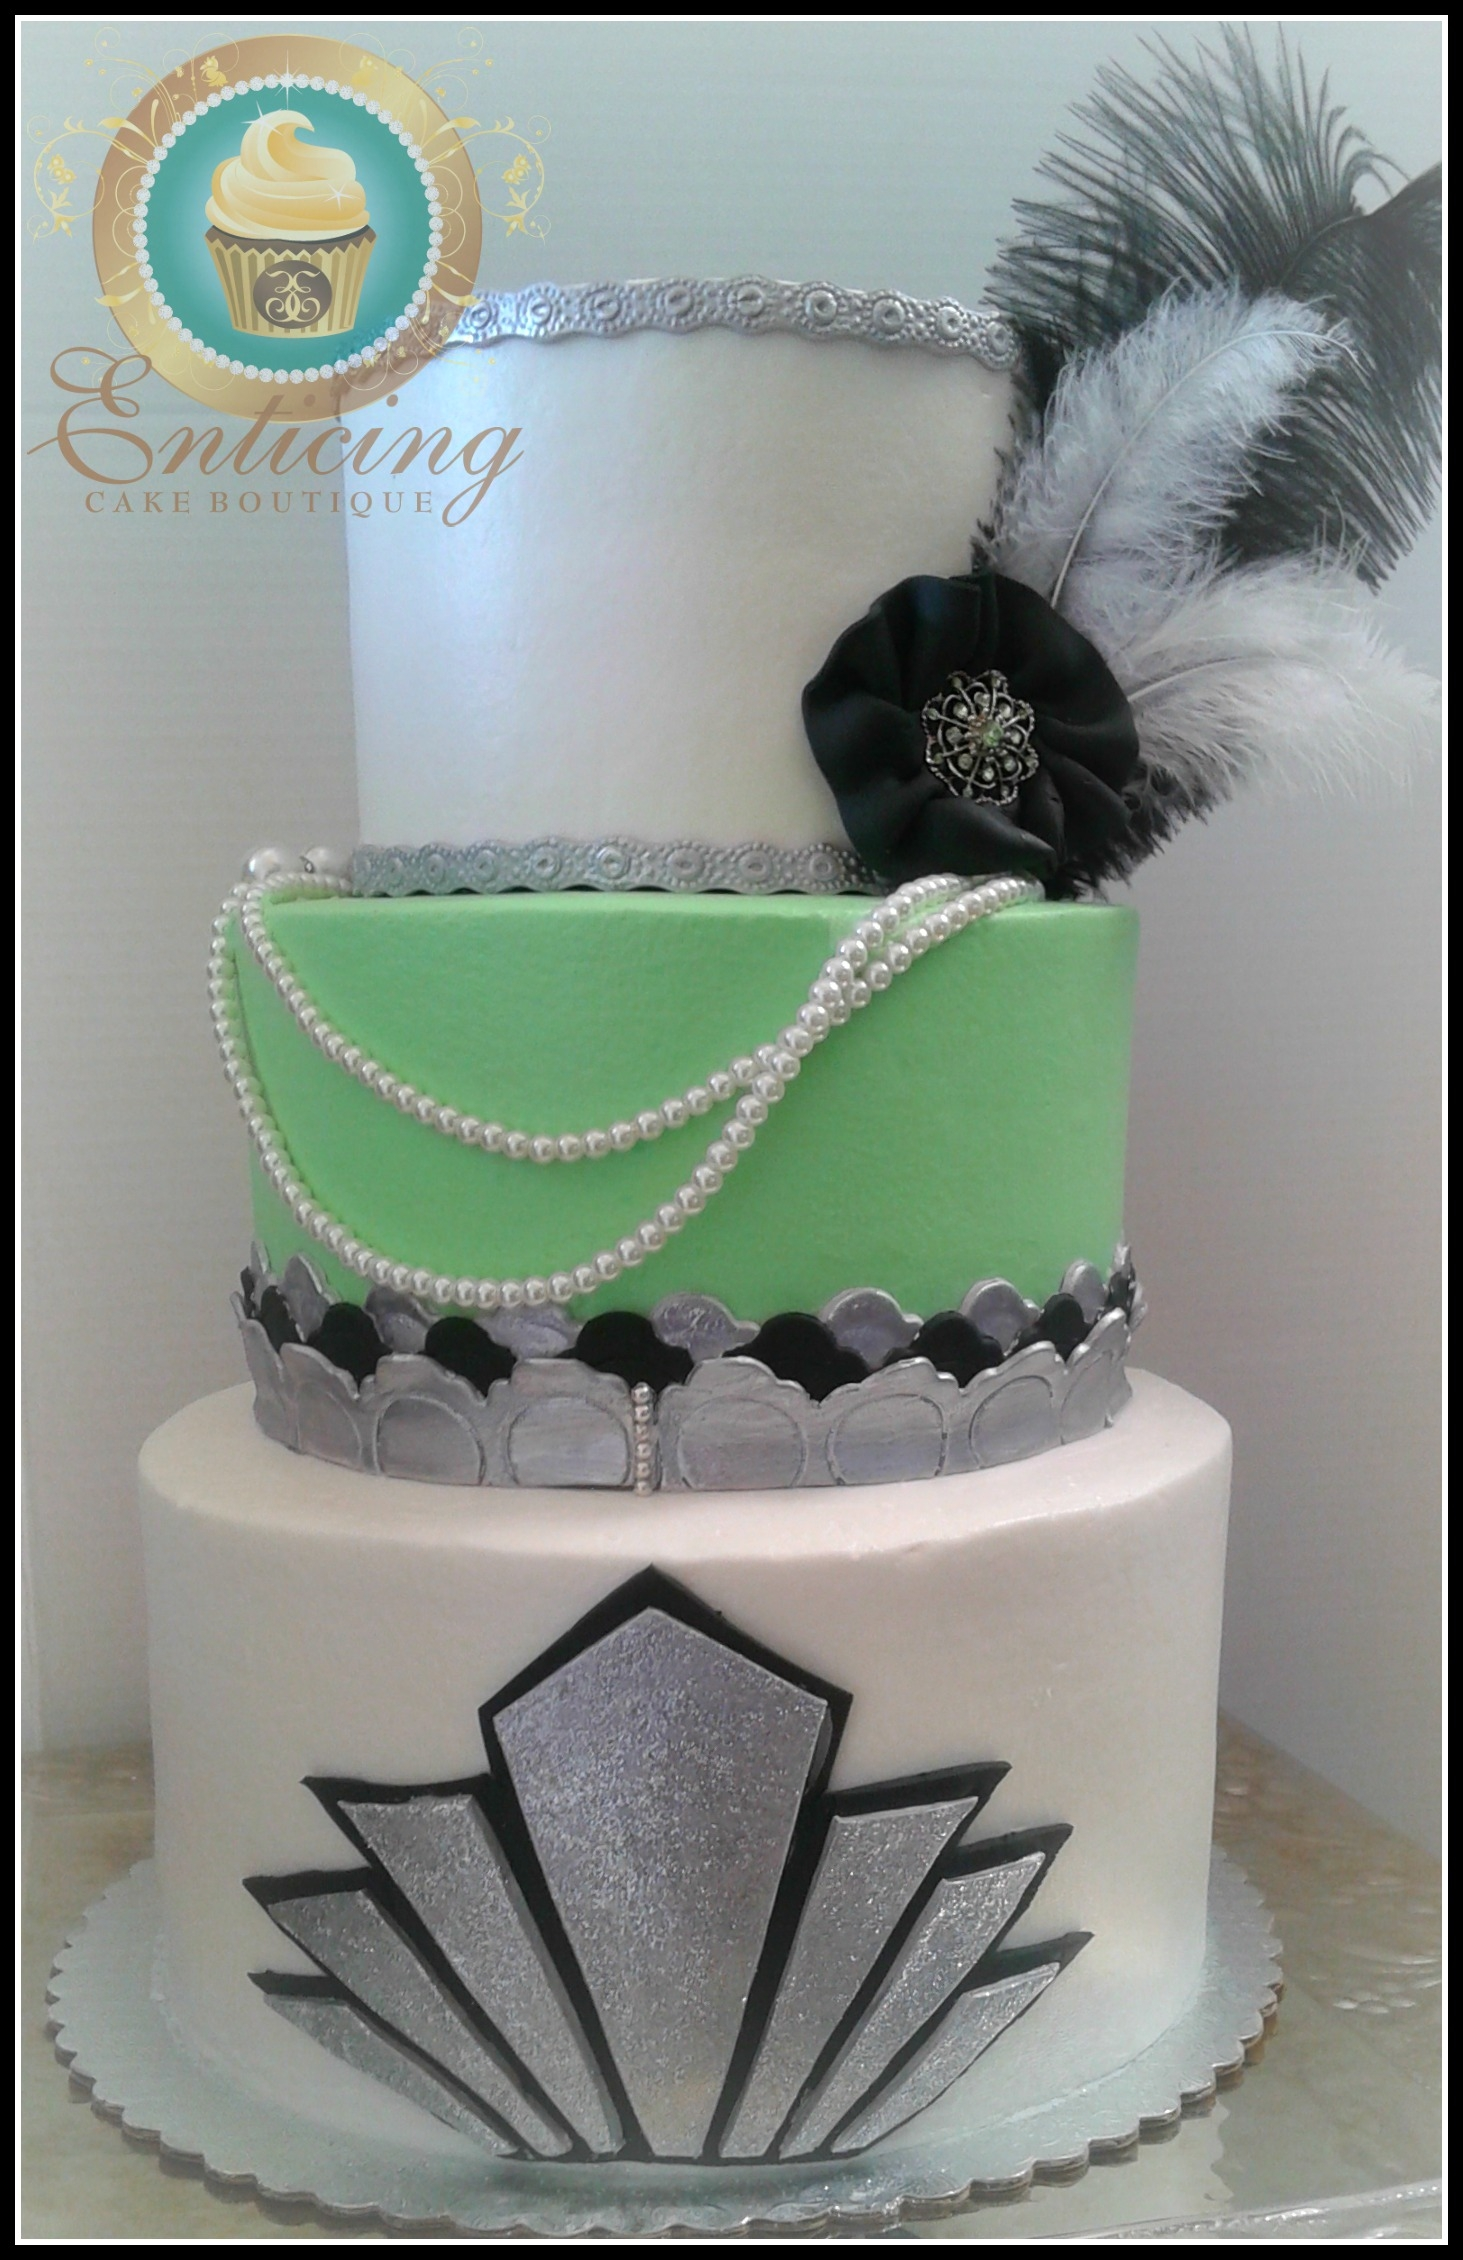 Art Deco Cake Decorations : Gatsby Art Deco Wedding Cake - CakeCentral.com